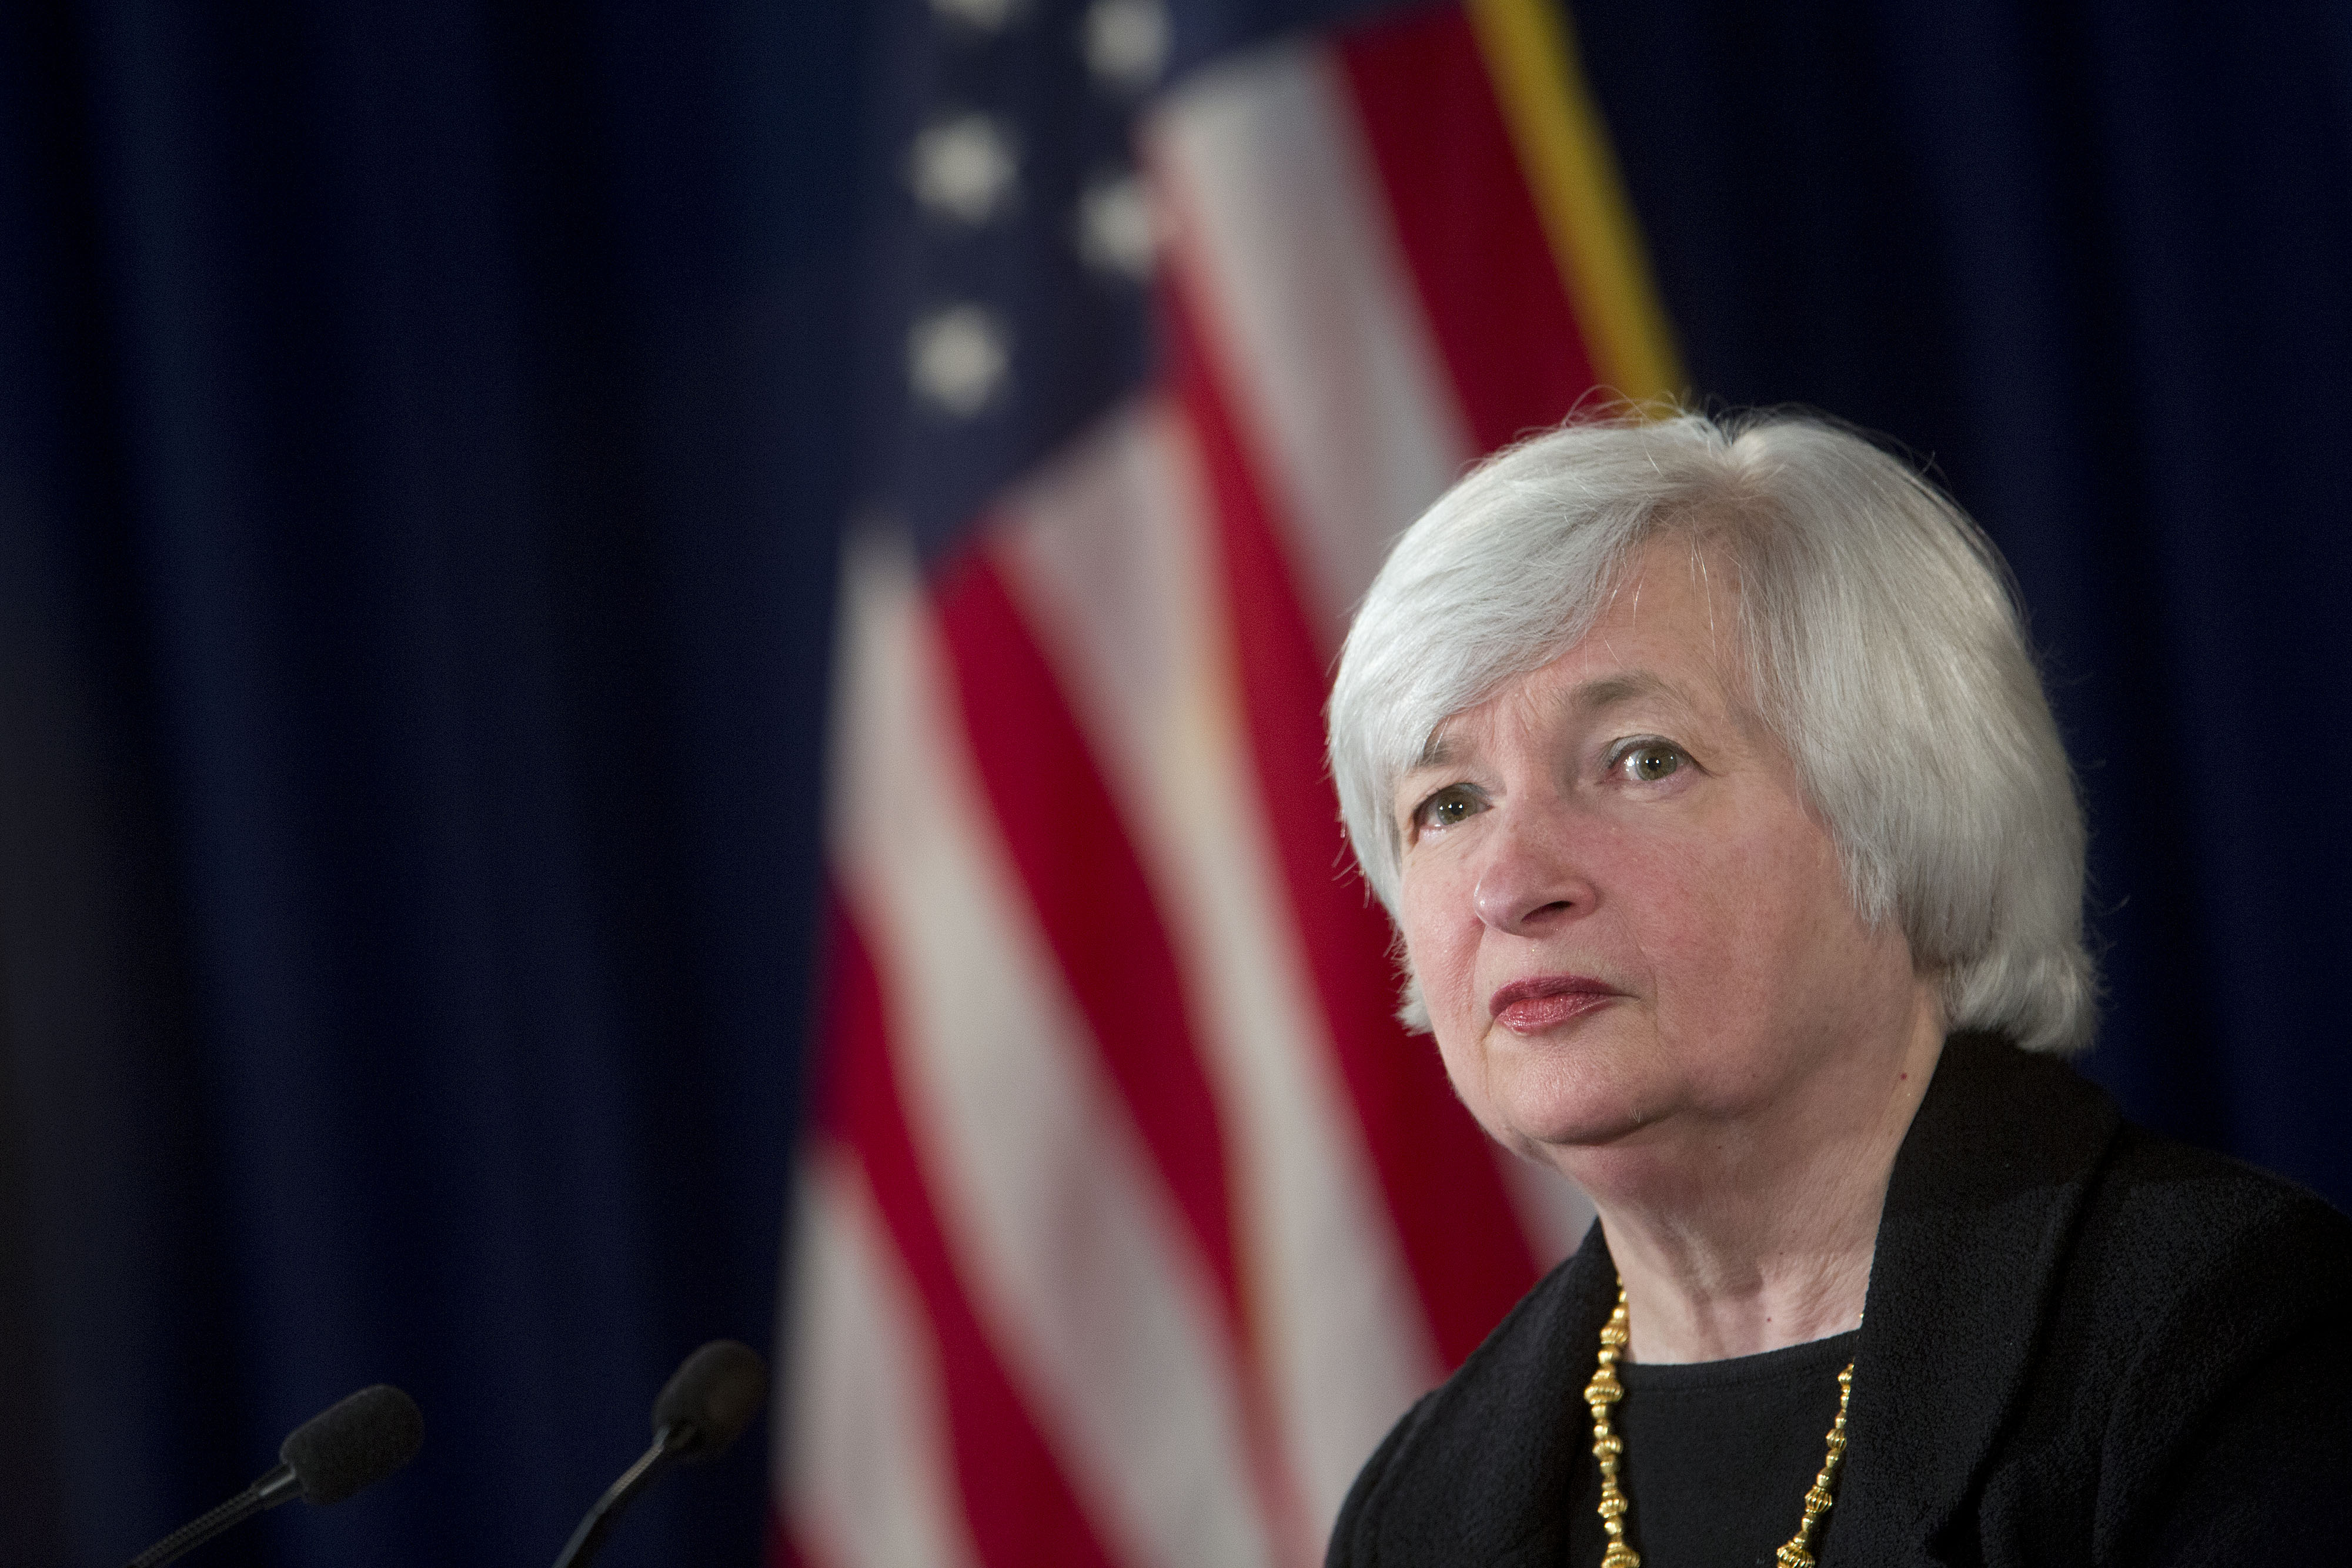 Janet Yellen, chair of the U.S. Federal Reserve, listens to a question during a news conference following a Federal Open Market Committee (FOMC) meeting in Washington on Sept. 17, 2014.